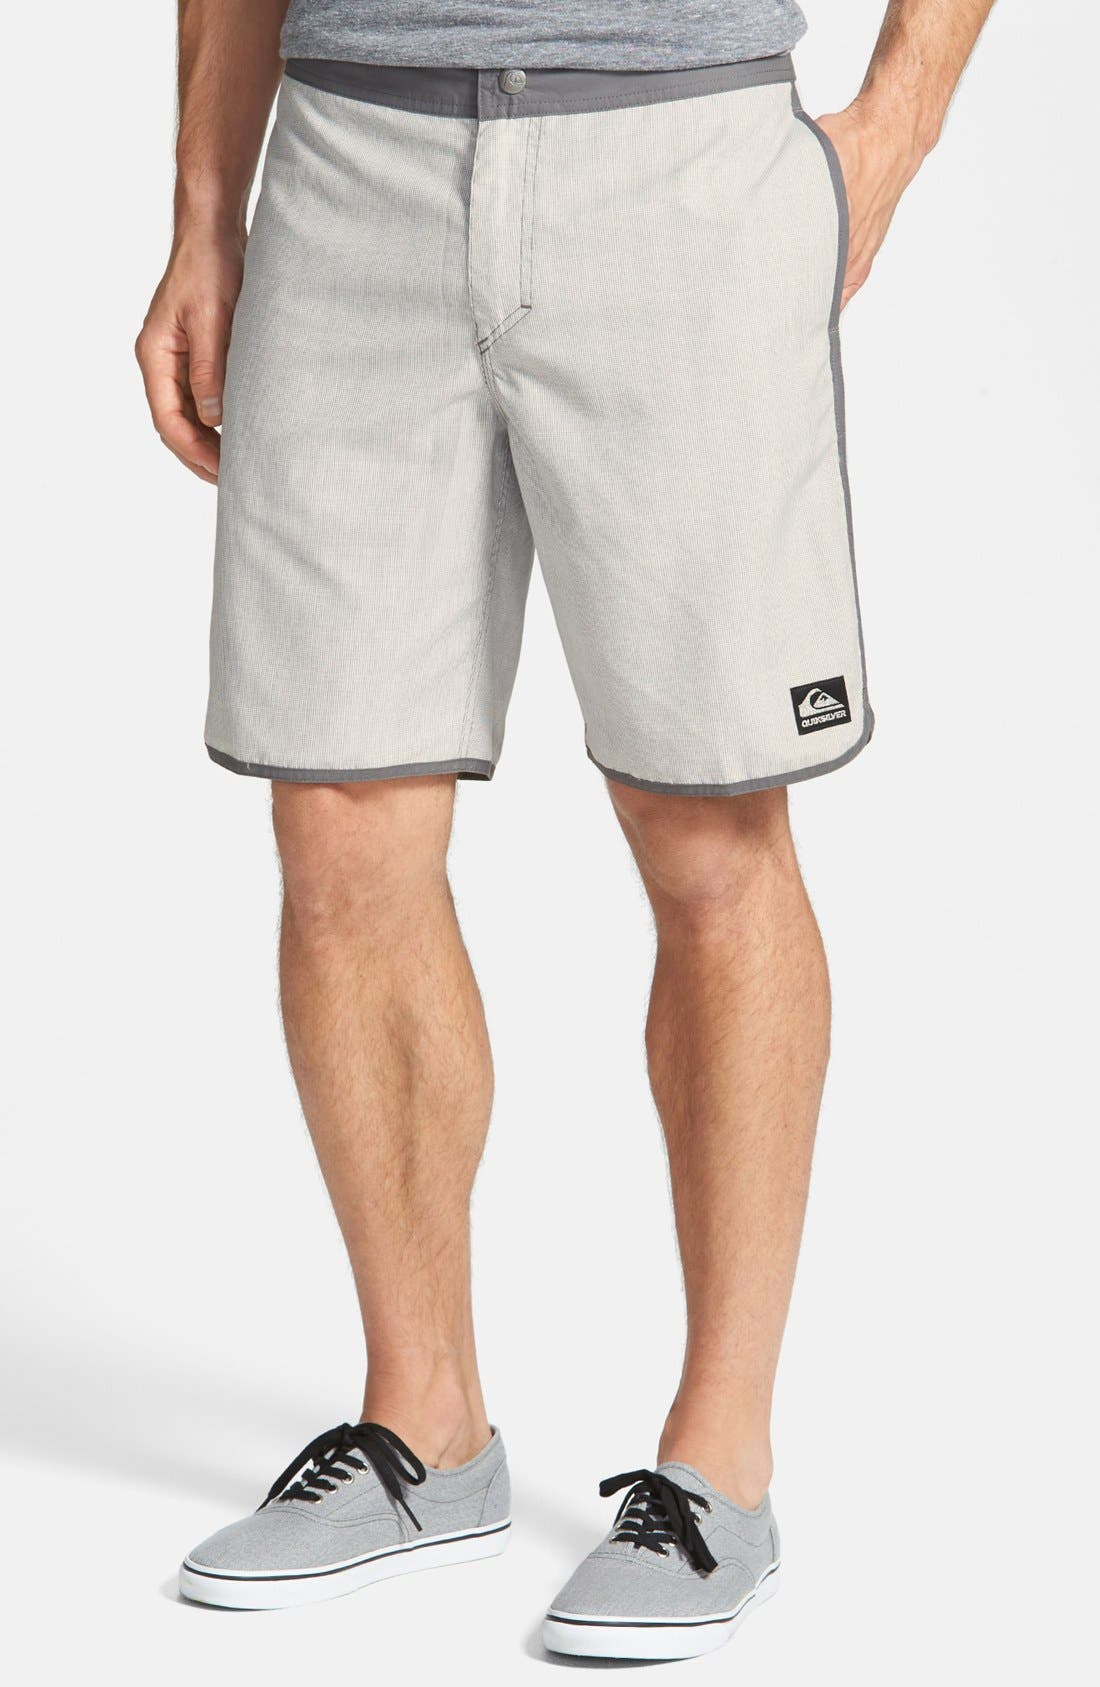 Alternate Image 1 Selected - Quiksilver 'Scallopuss' Board Shorts